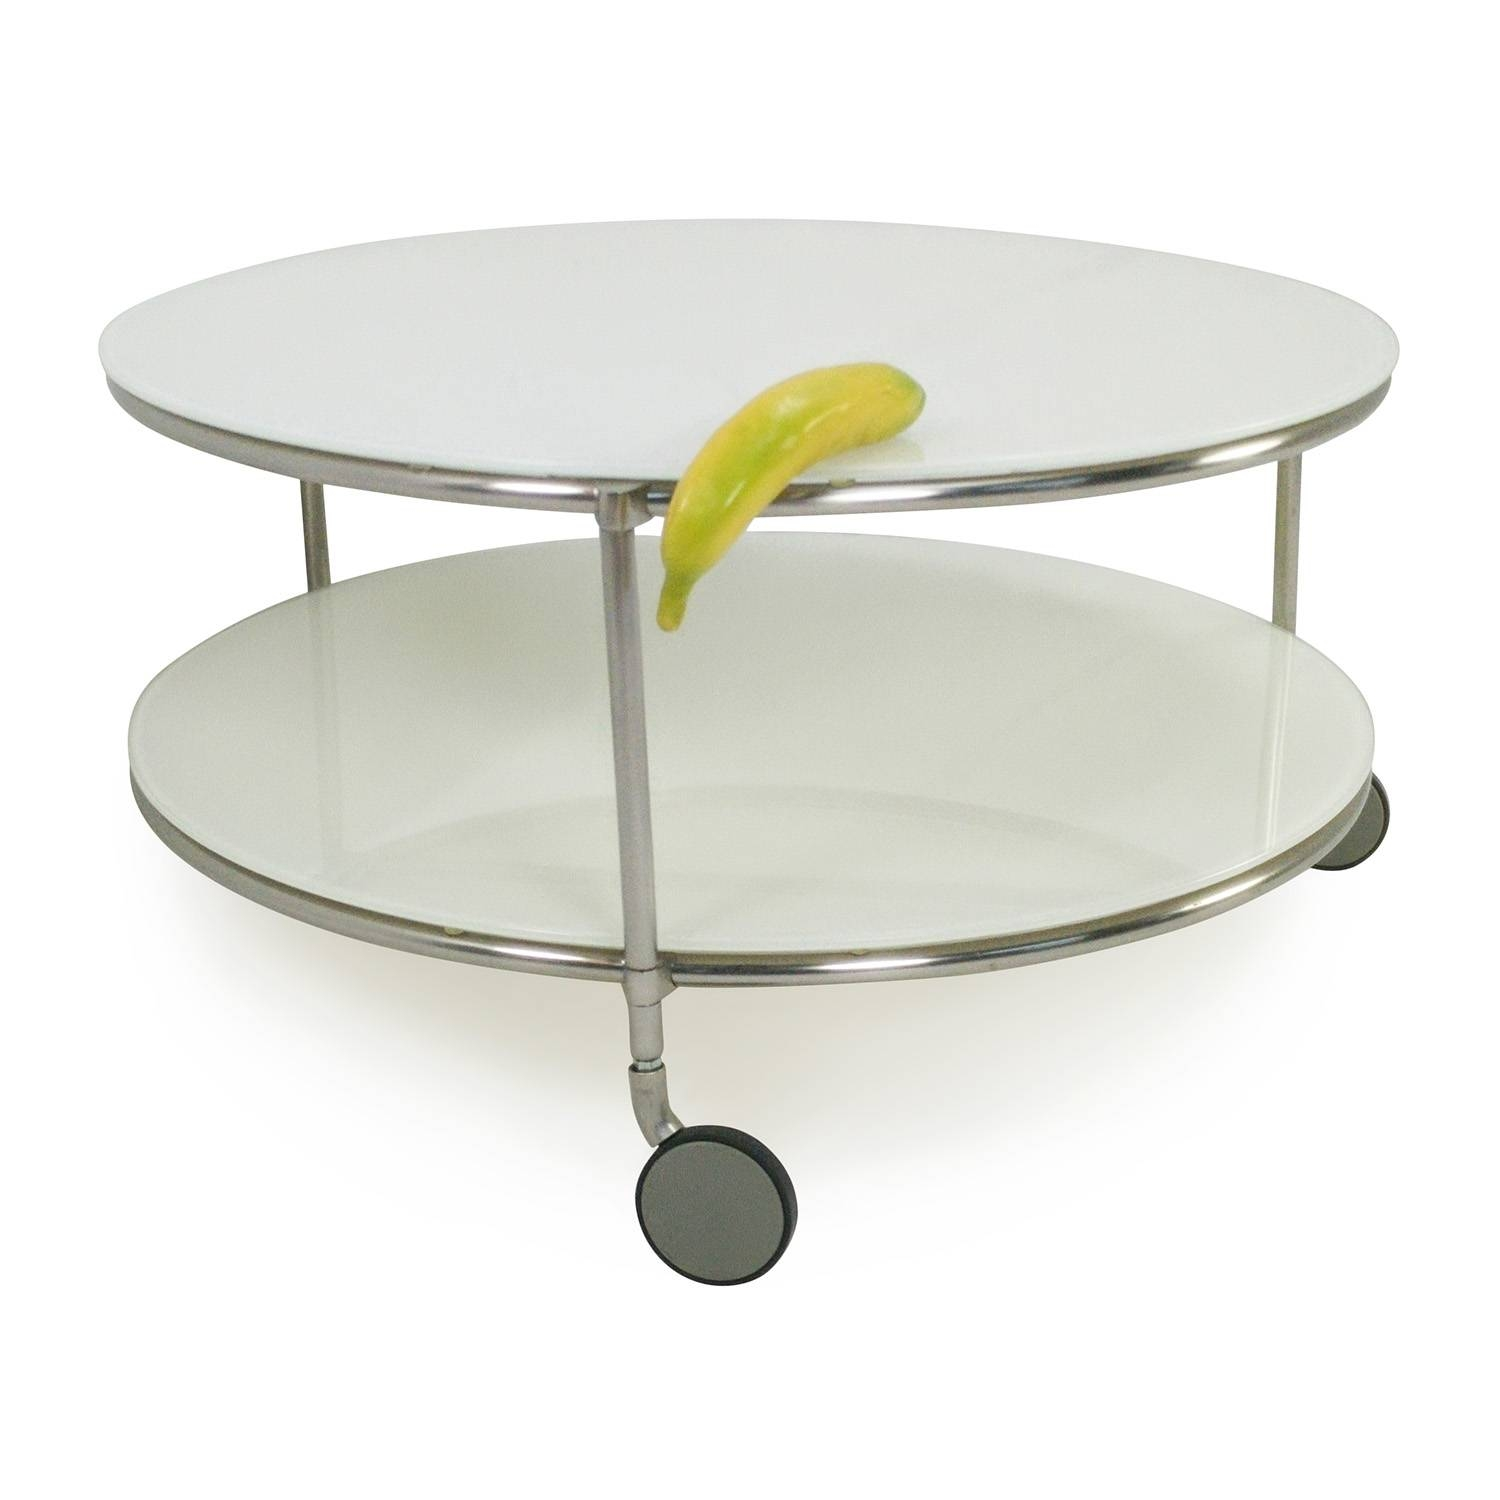 82% Off   Ikea String Coffee Table With Casters / Tables Regarding Glass Coffee Tables With Casters (Photo 29 of 30)